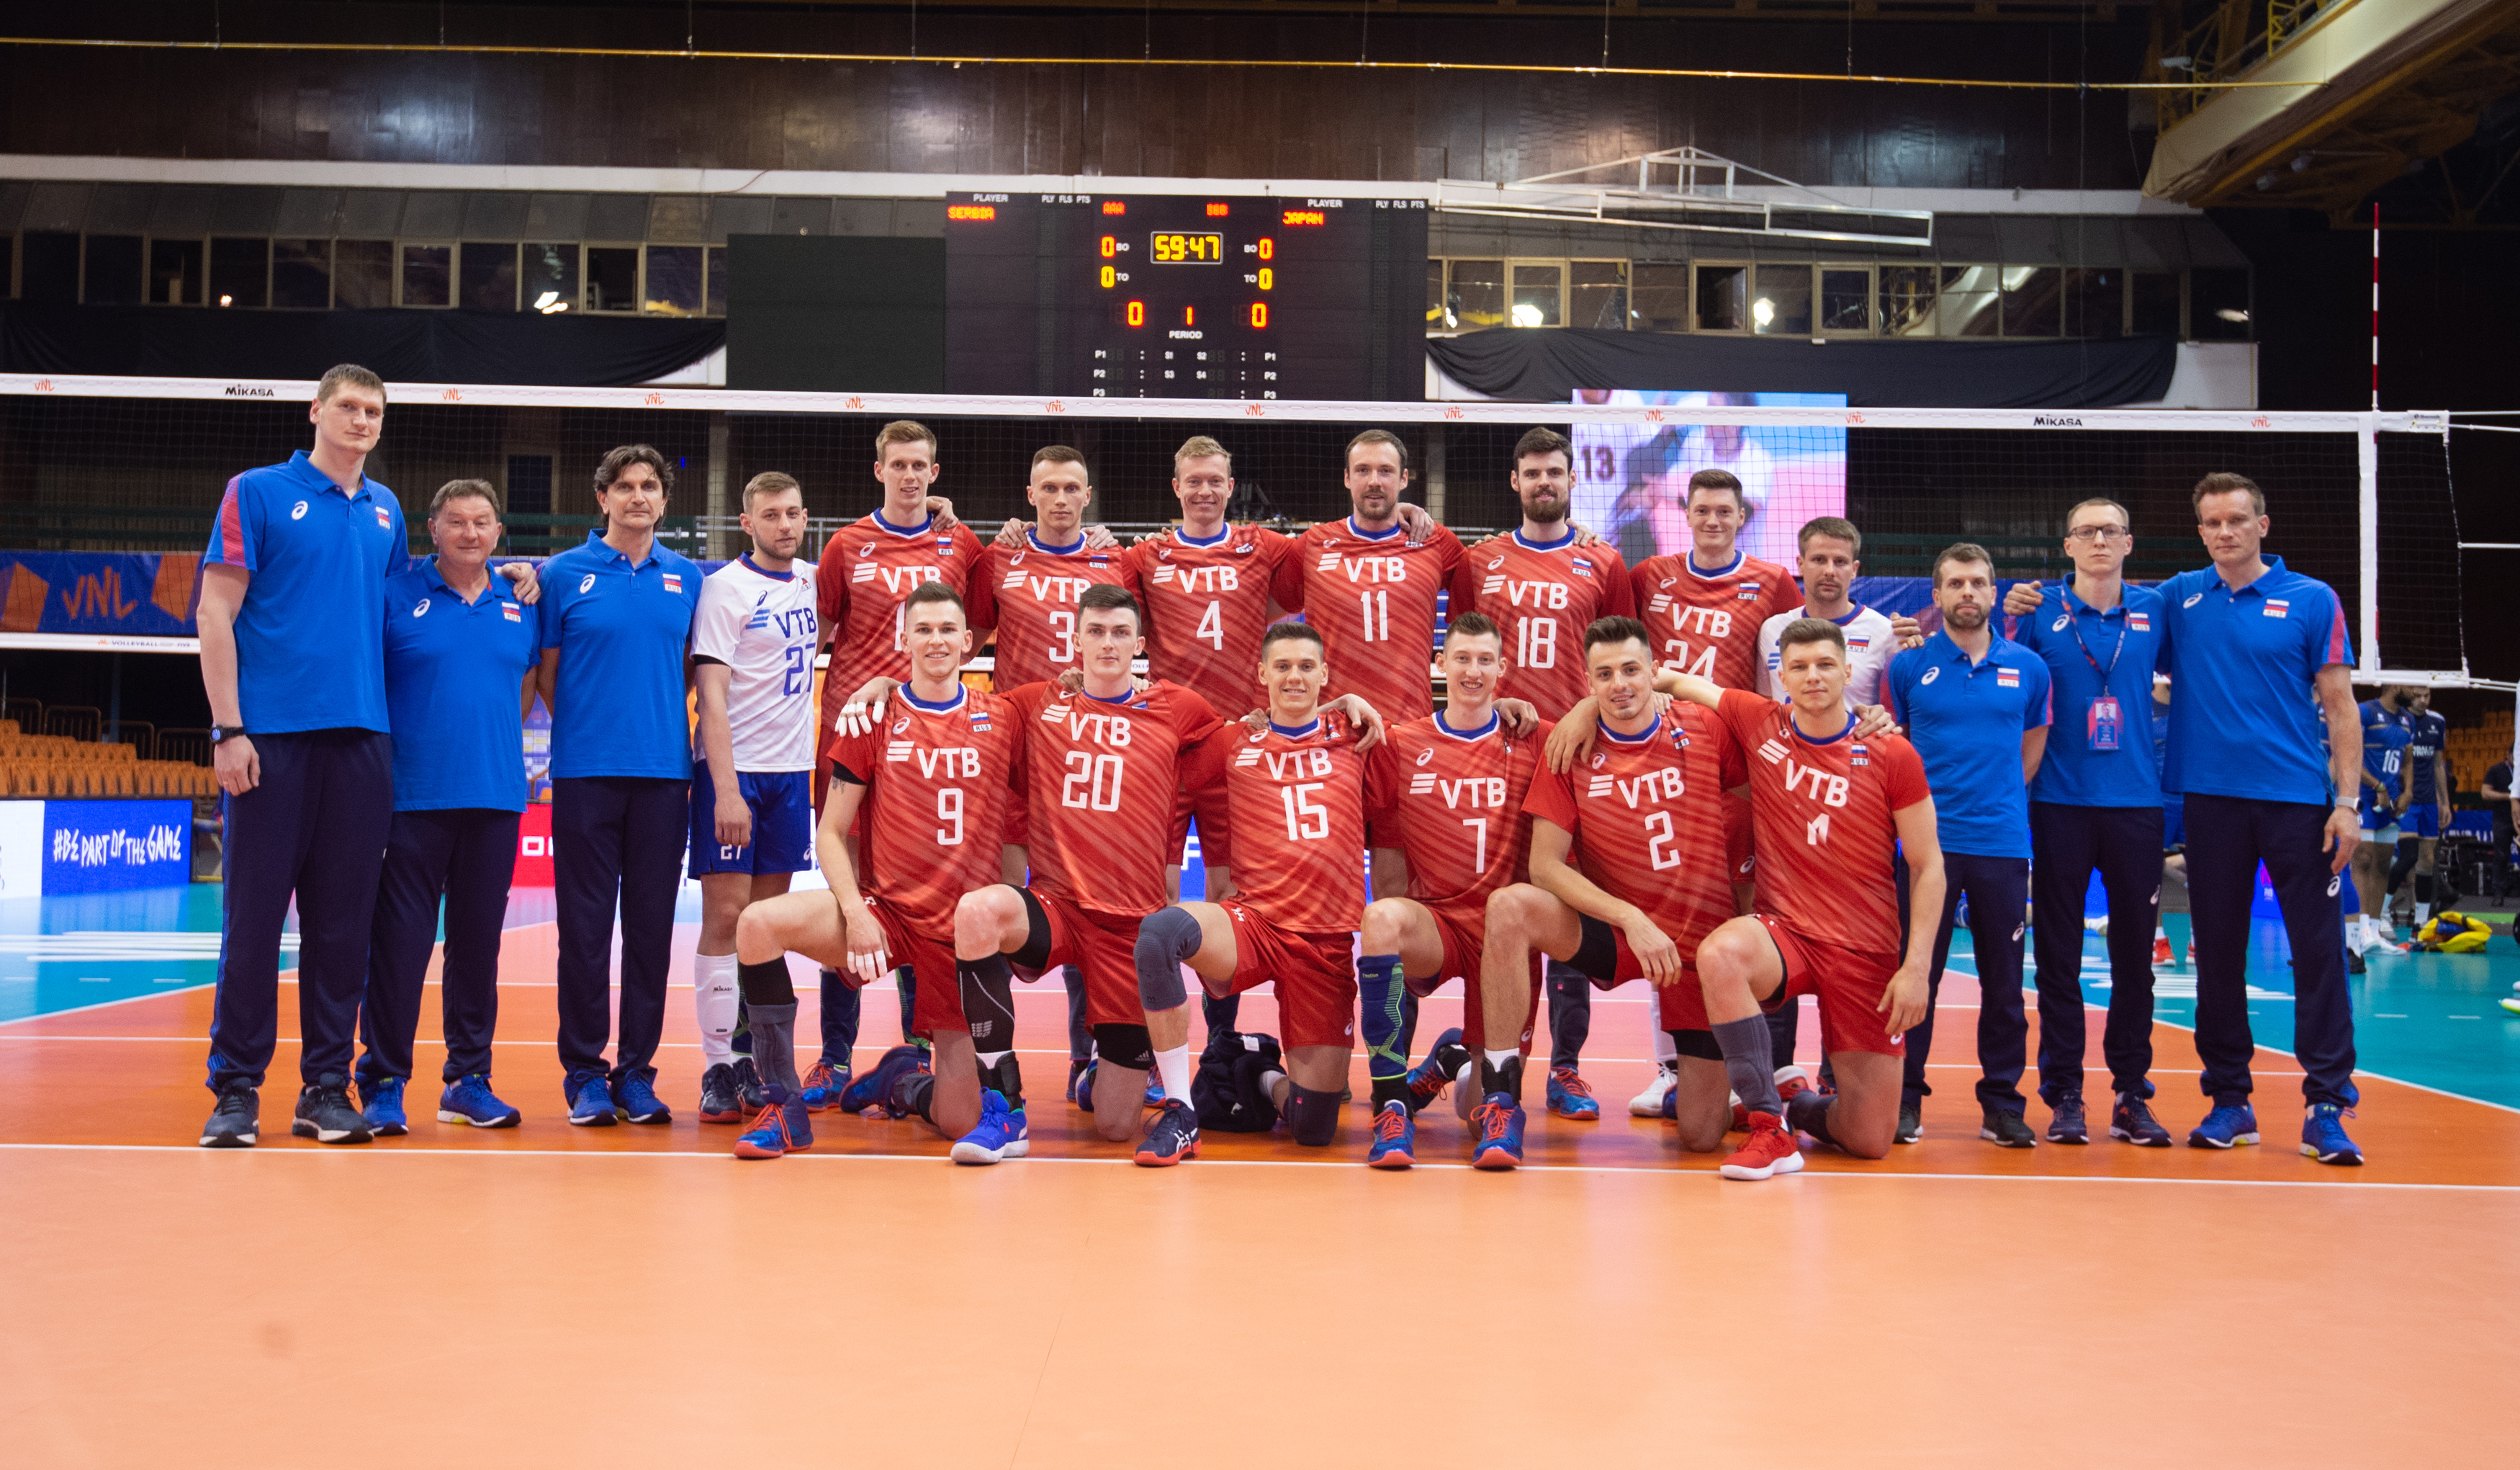 Fivb Volleyball Nations League 2018 Men S Teams Overview Russia Volleyball Nations League 2021